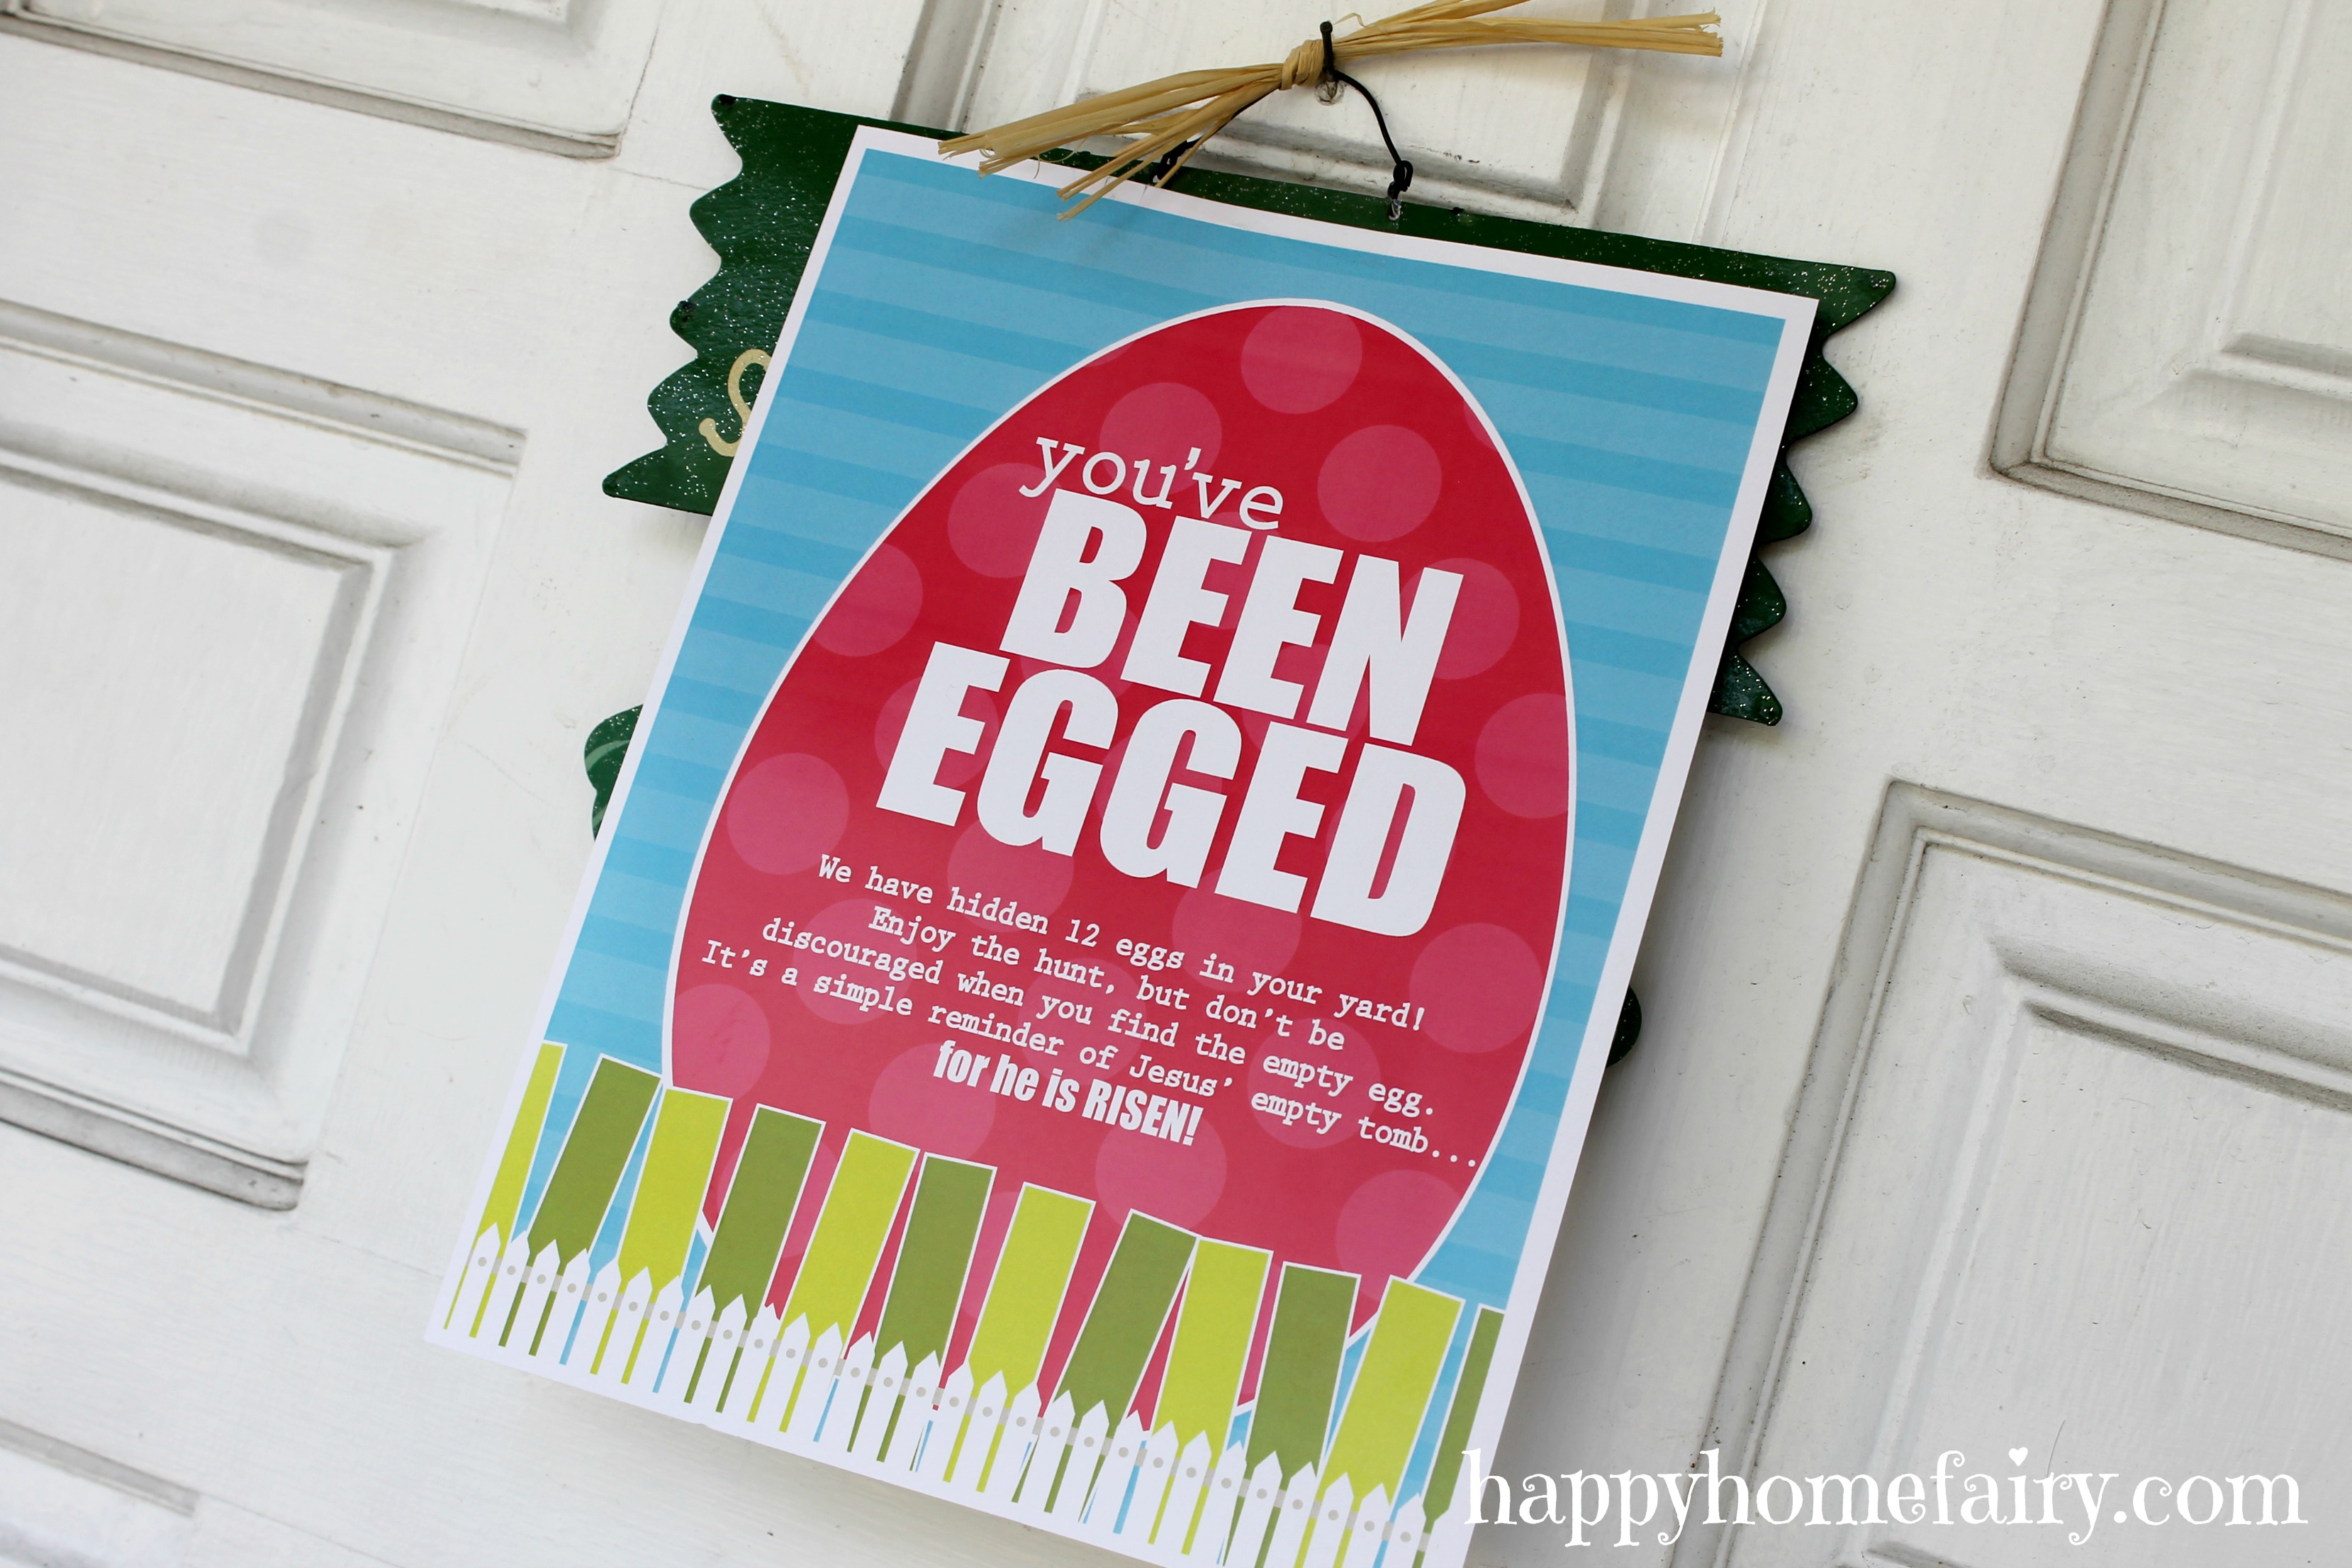 graphic about You've Been Egged Printable named Youve Been Egged - He Is Risen Structure (Cost-free Printable